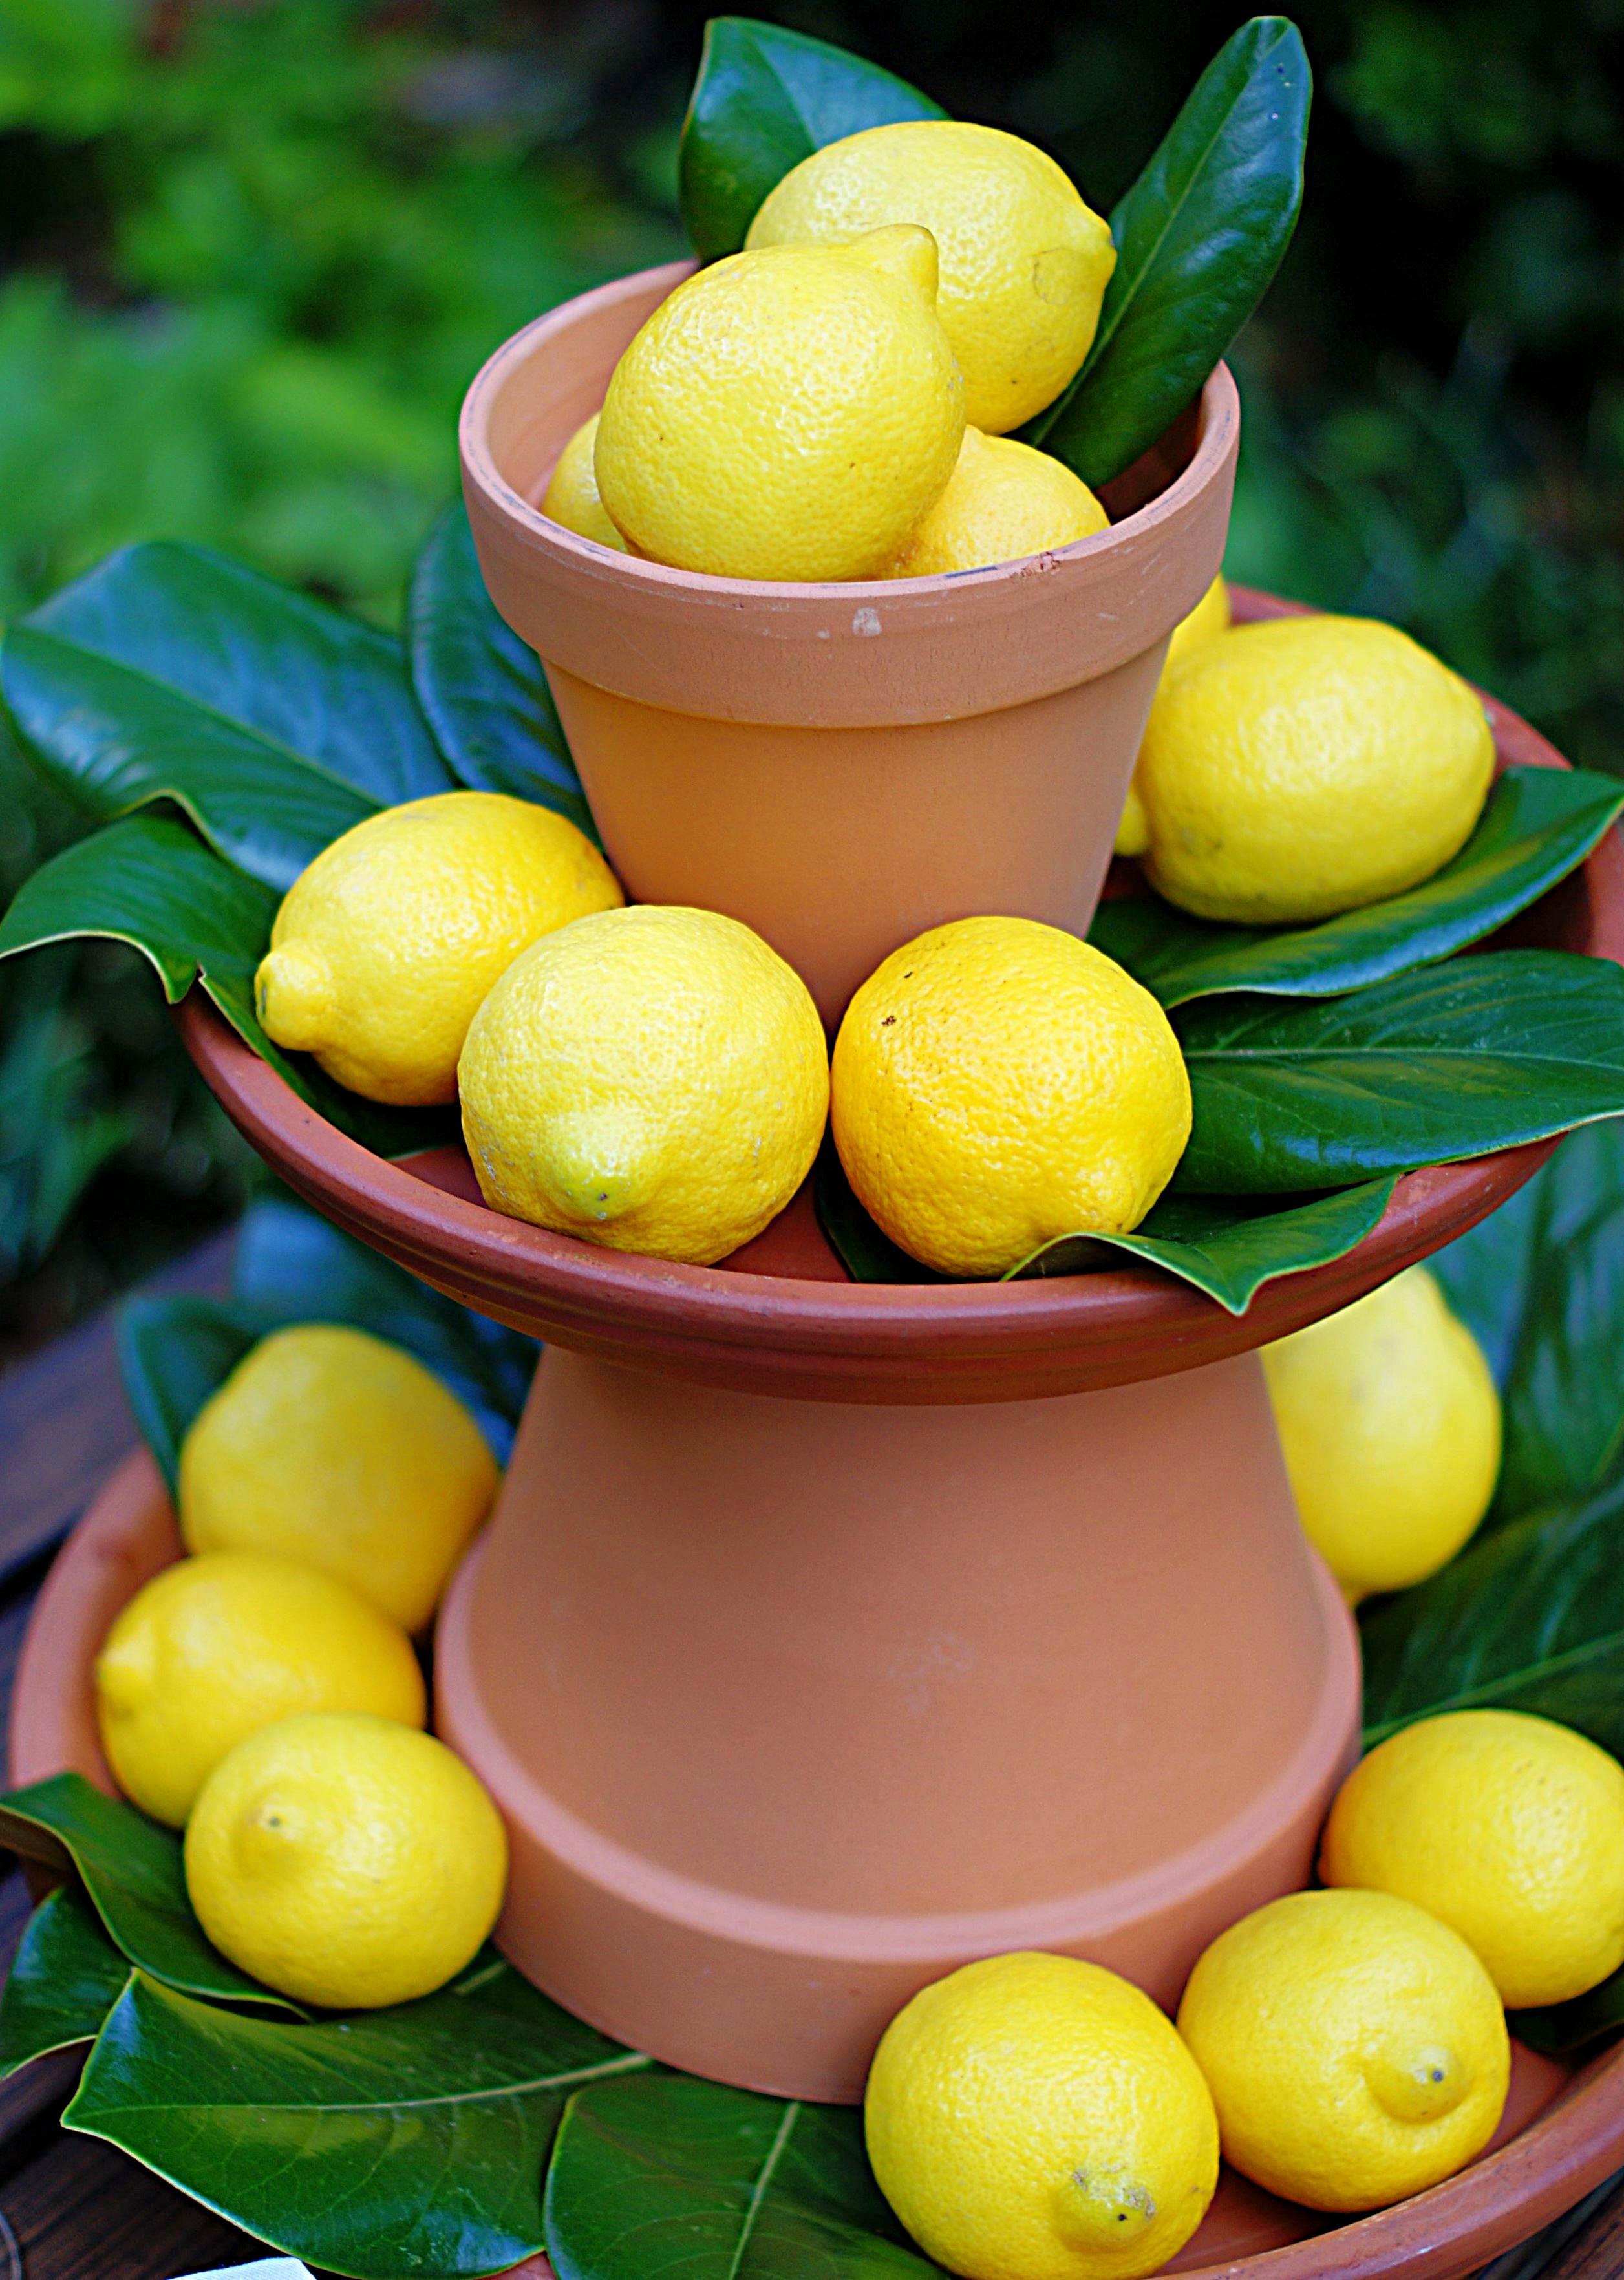 An upclose of the 2 tier lemon centerpiece with terracotta pots and magnolia leaves